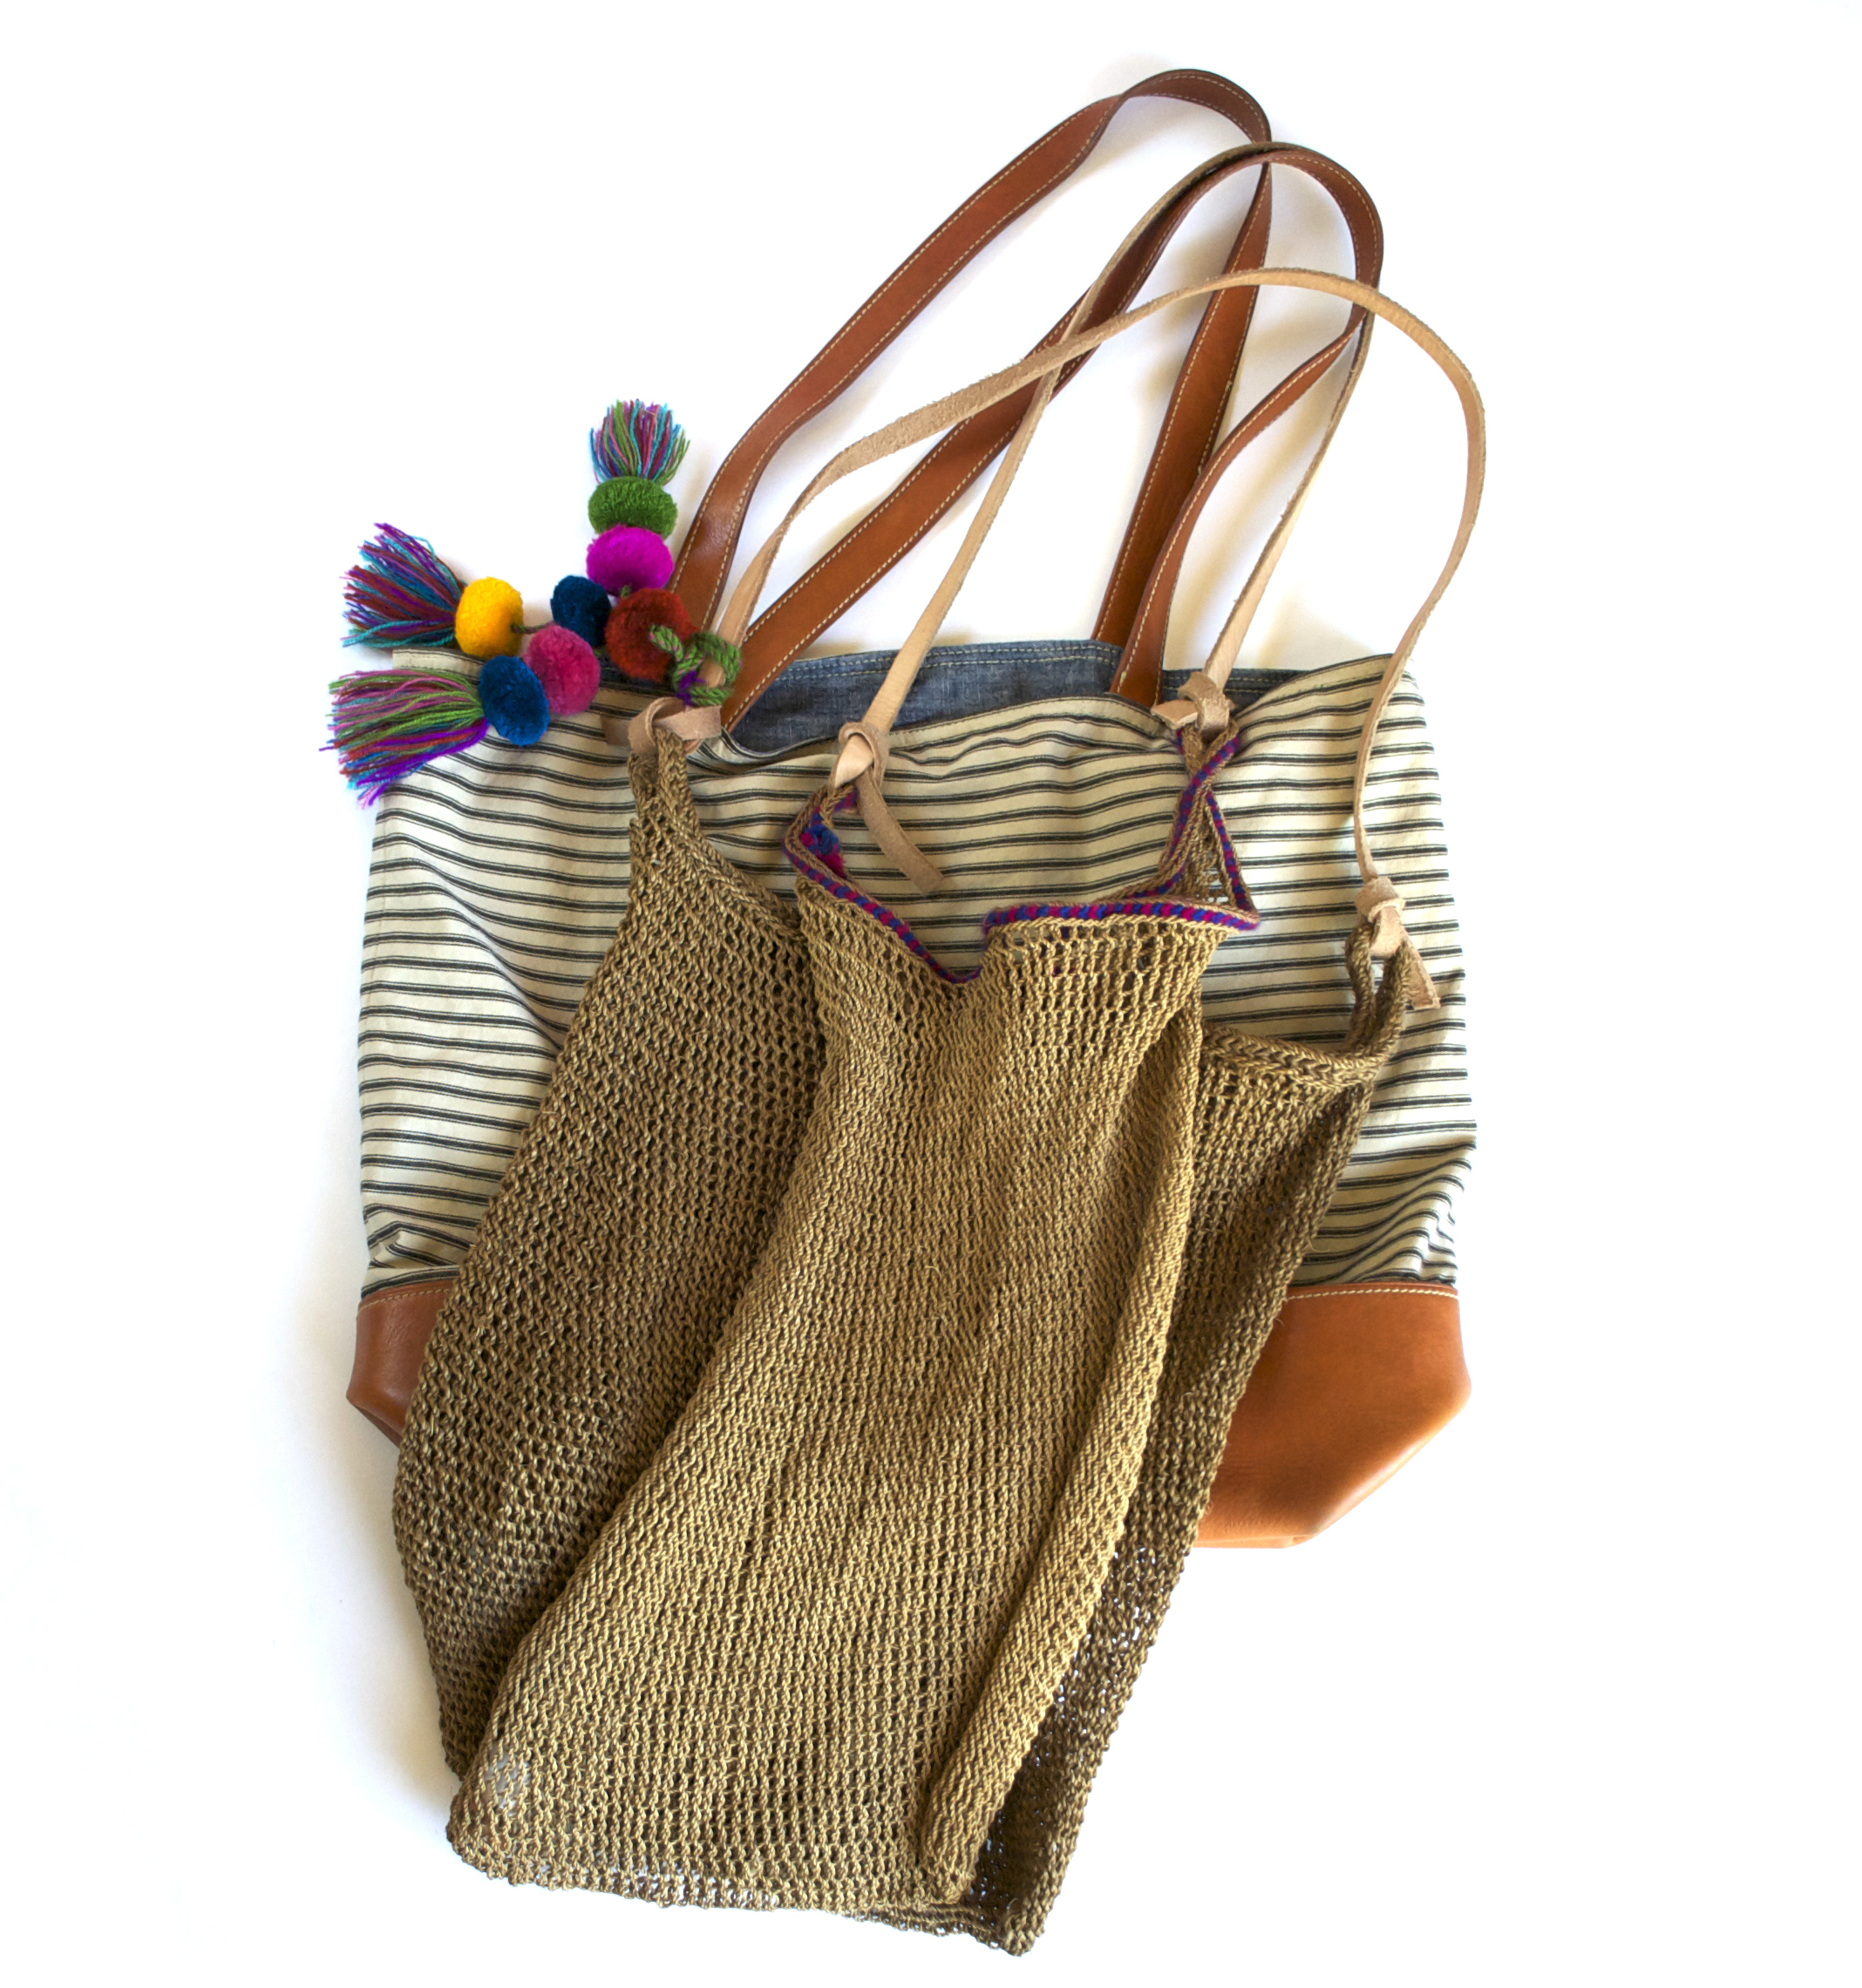 pennyroyal design shopping bags